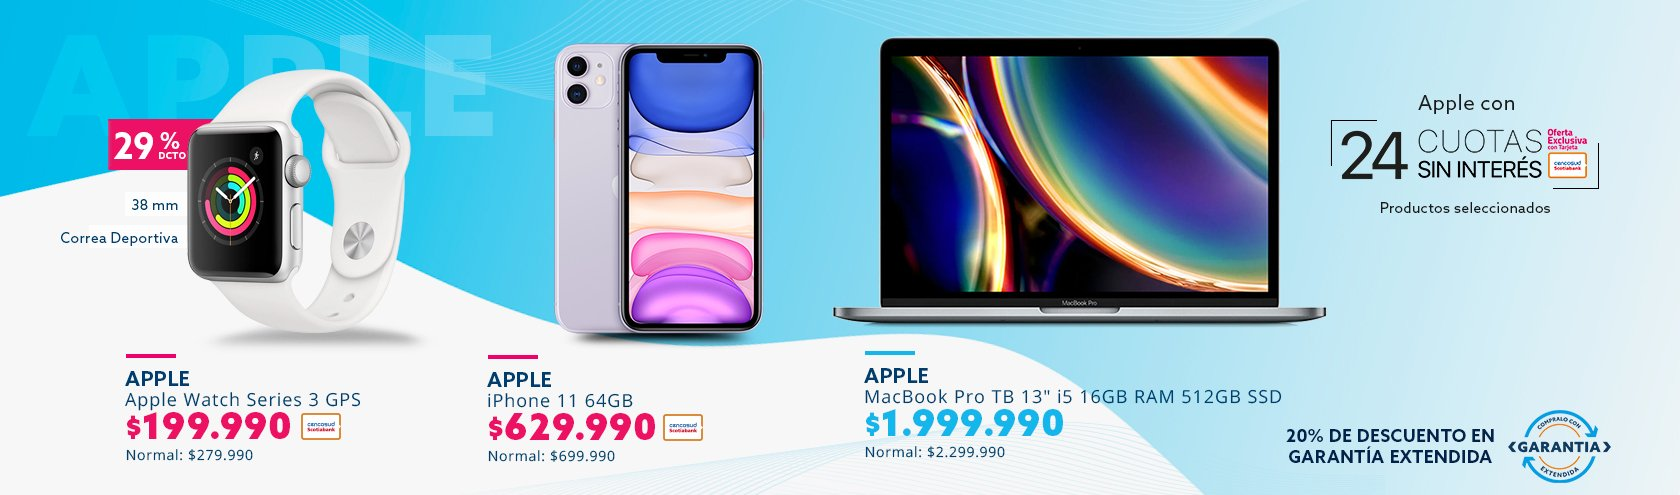 Descuento en Apple Watch, iPhone 11 y Macbook Pro 13 pulgadas